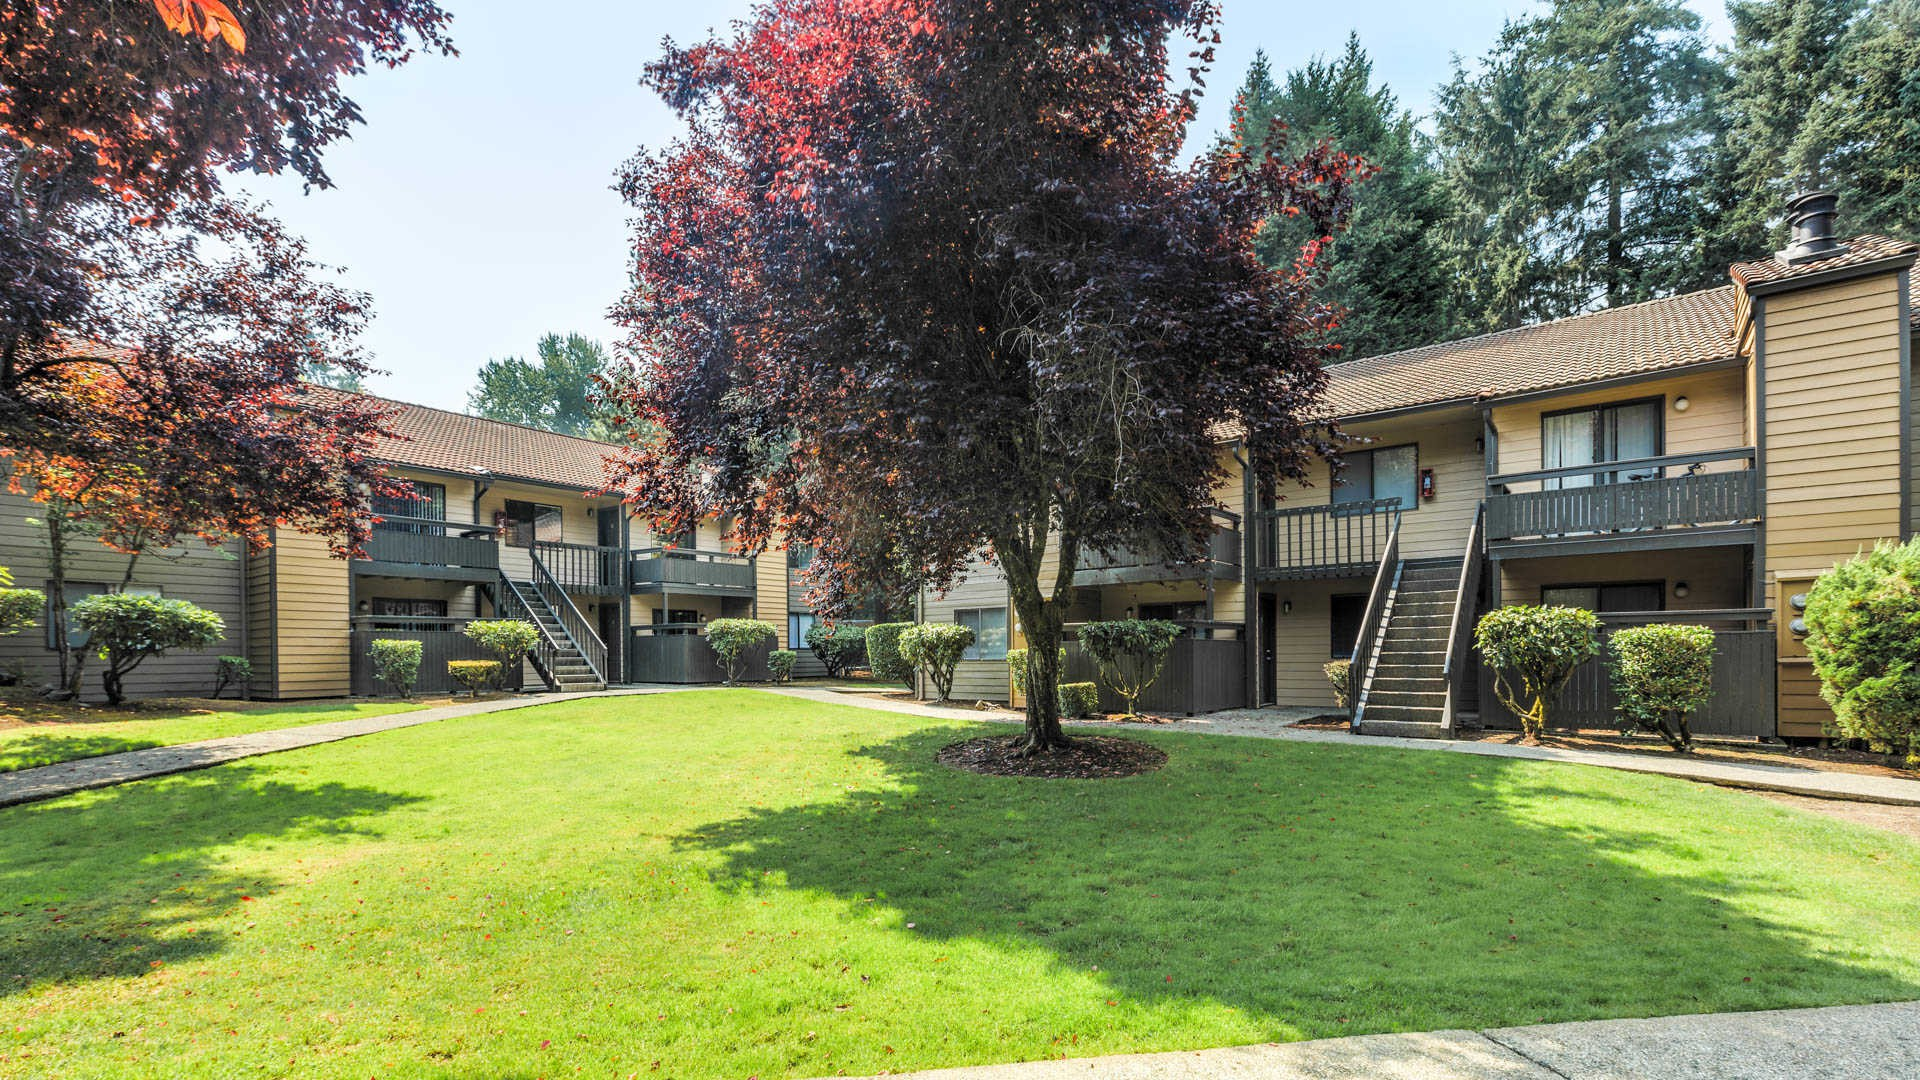 Apartments Near RTC Bellevue Meadows for Renton Technical College Students in Renton, WA